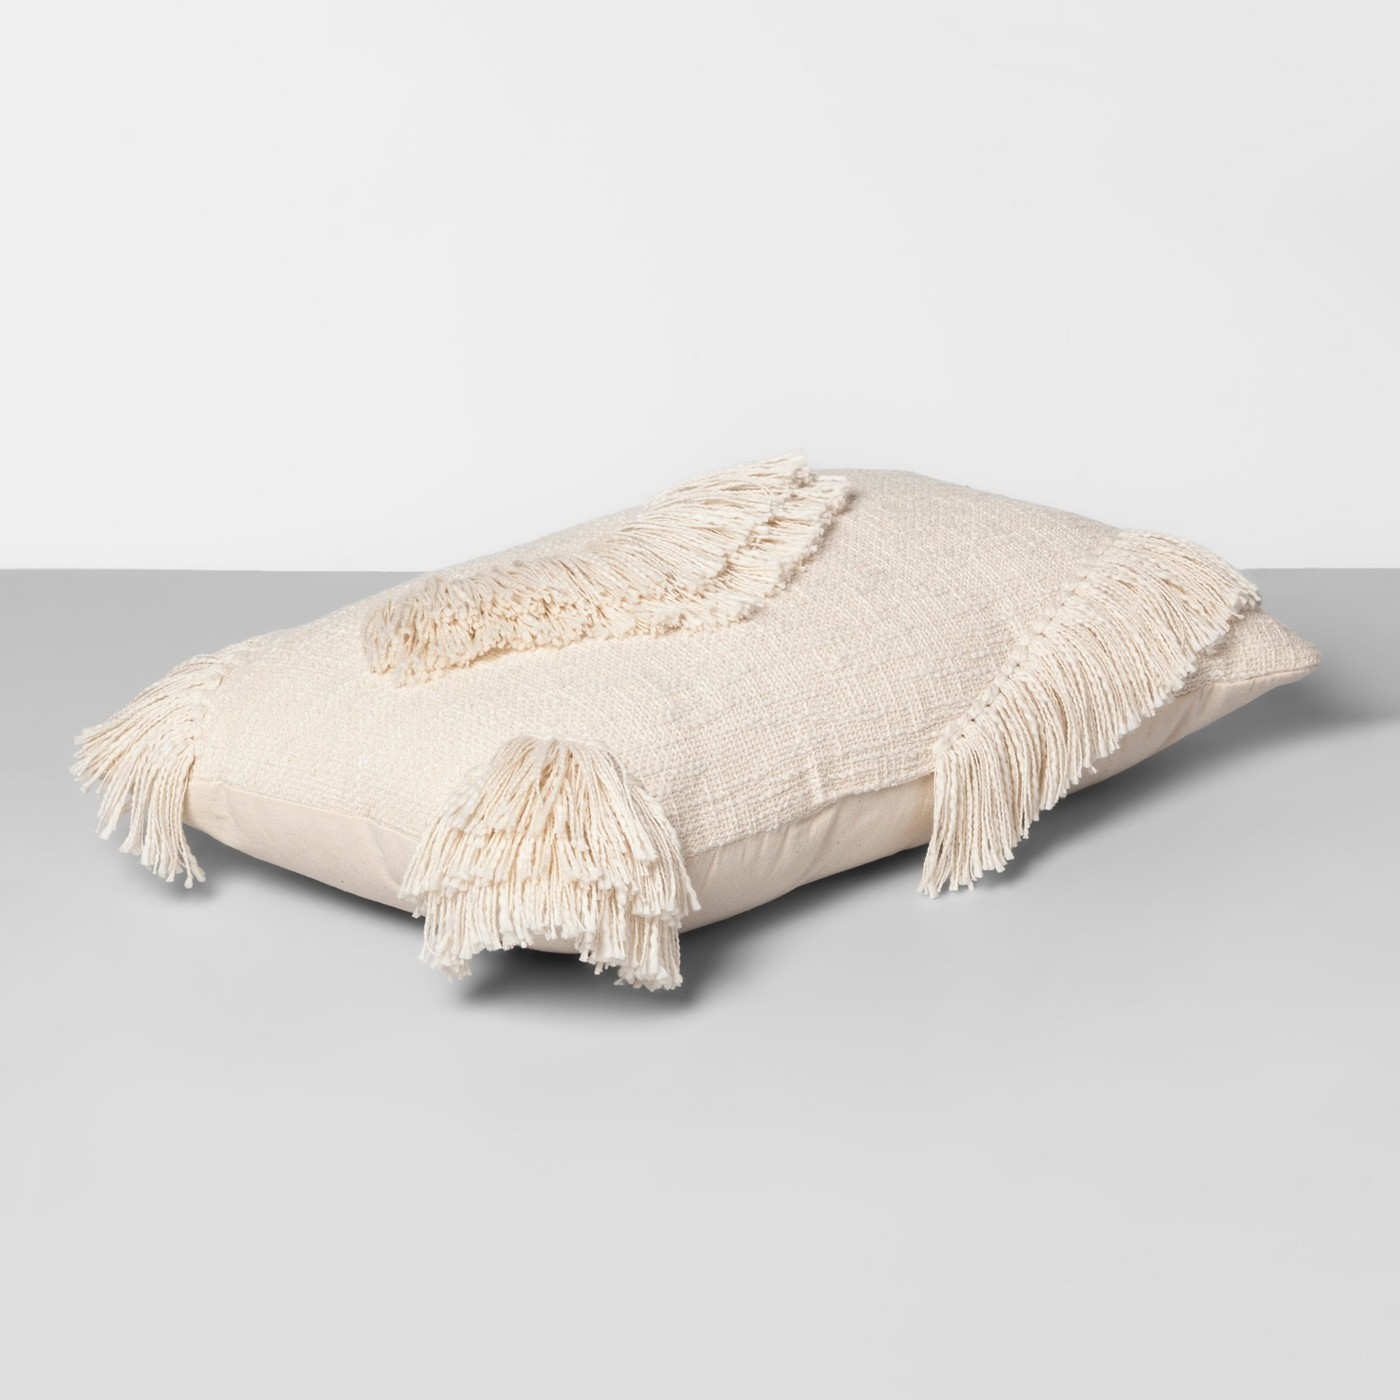 Textured Fringe Oversize Lumbar Throw Pillow Cream - Opalhouse™ - image 2 of 3